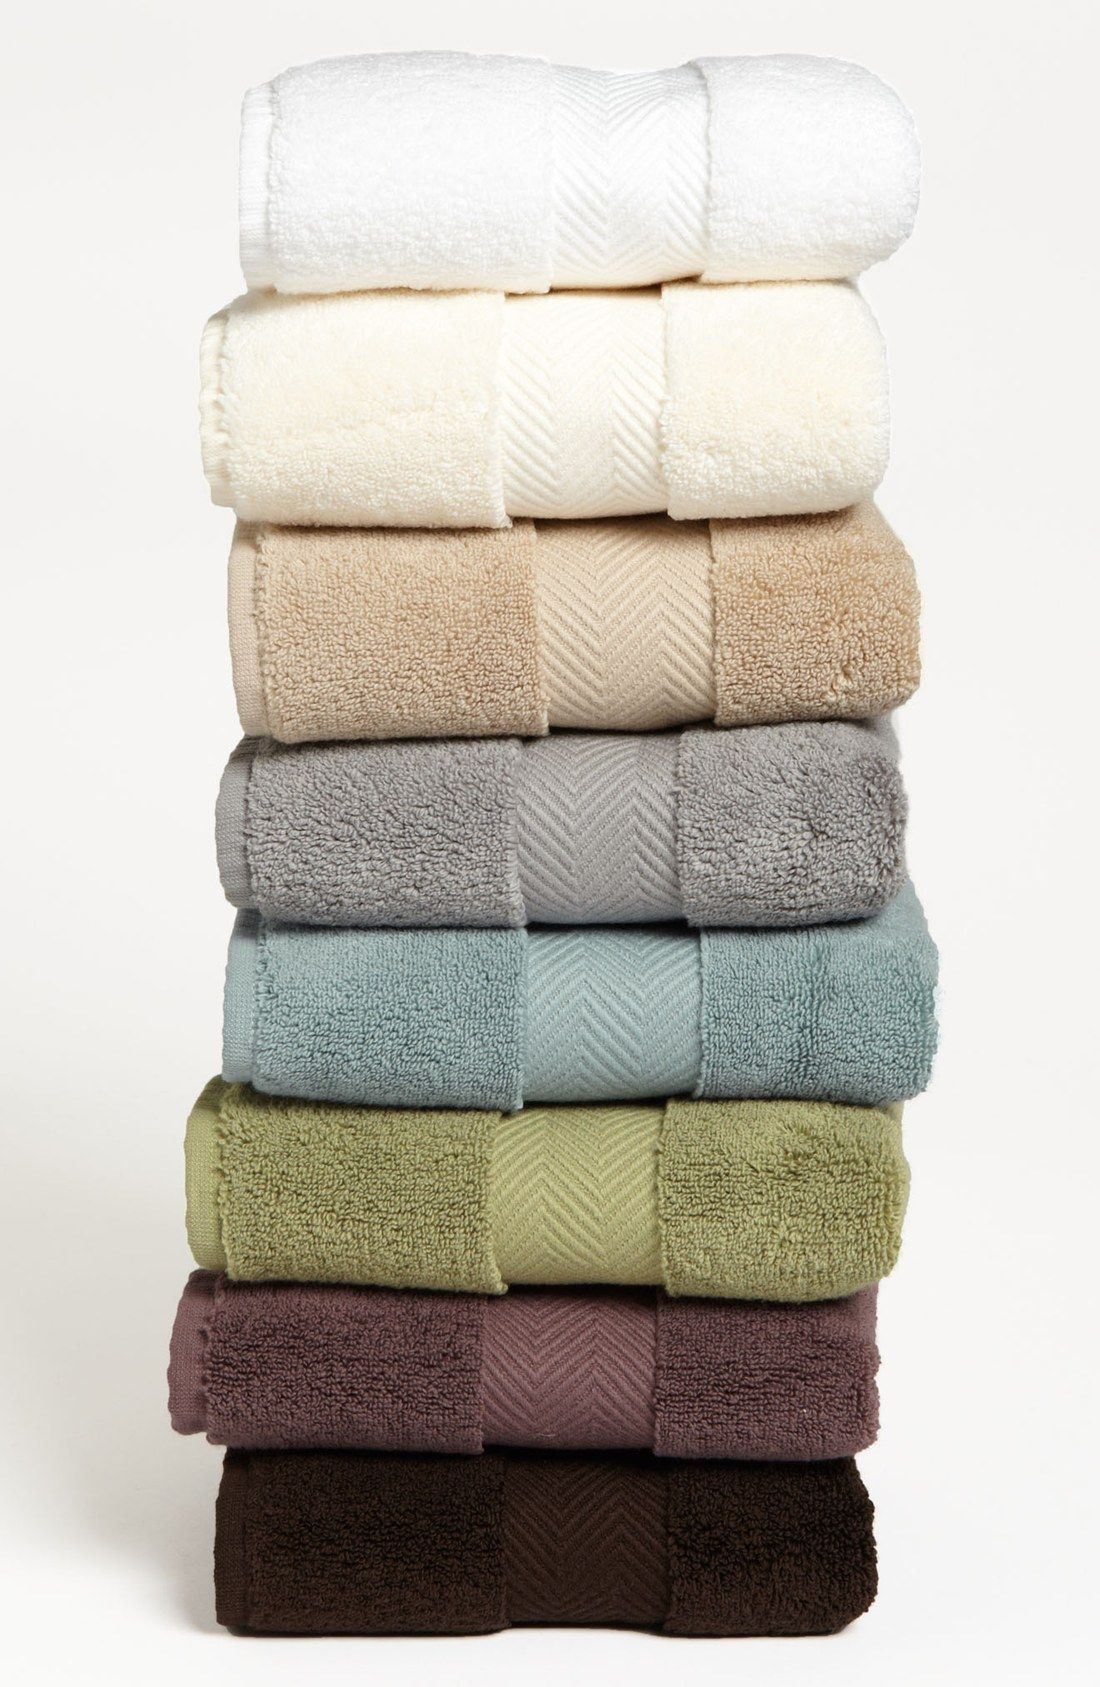 Hydrocotton Bath Towels Awesome Now This Looks Comfy  Hydrocotton Ultra Soft Hand Towel Design Inspiration